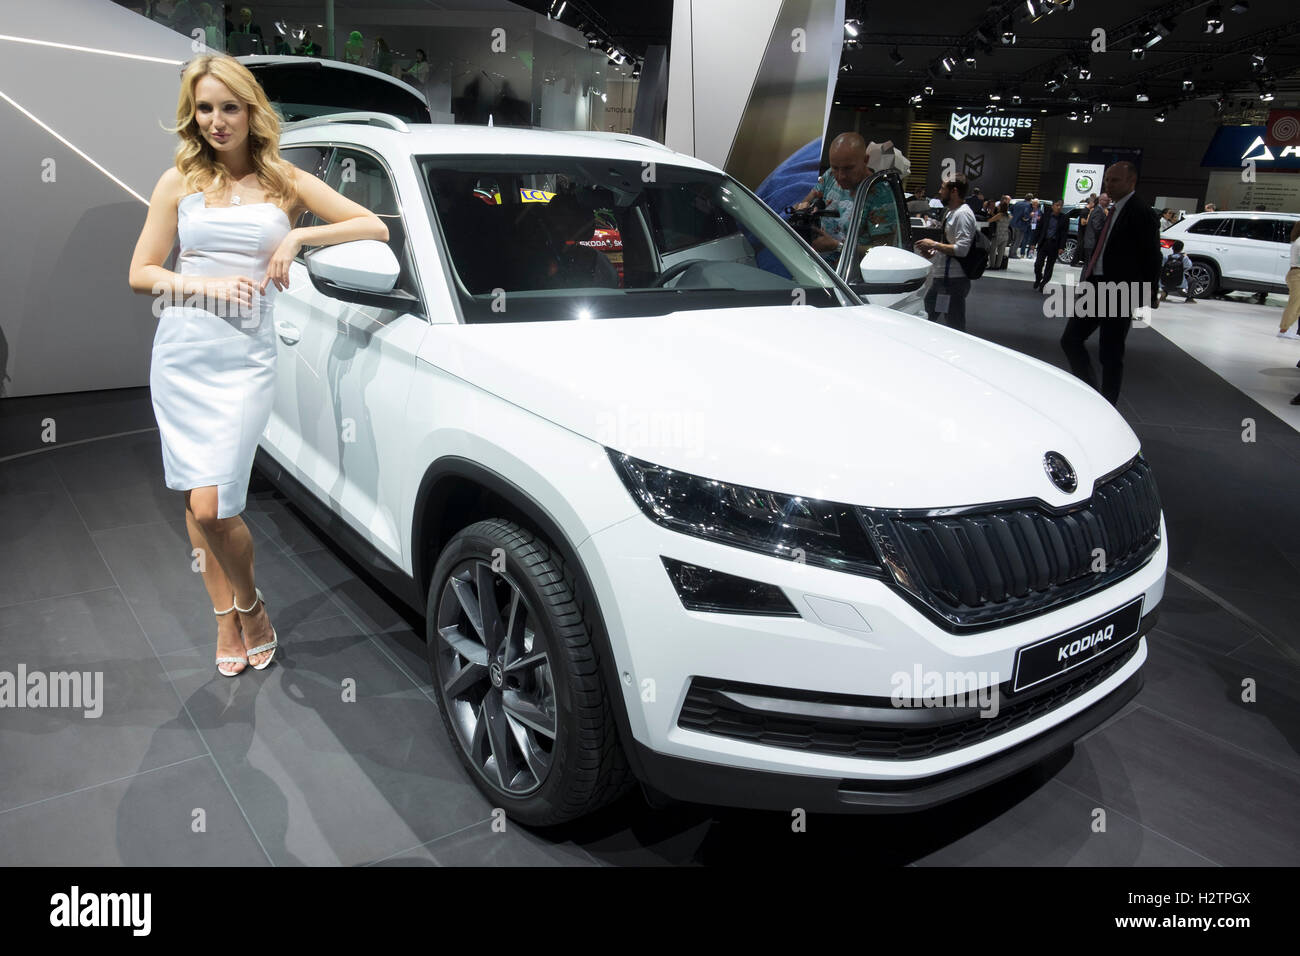 World premiere of Skoda Kodiaq large SUV at Paris Motor Show 2016 - Stock Image